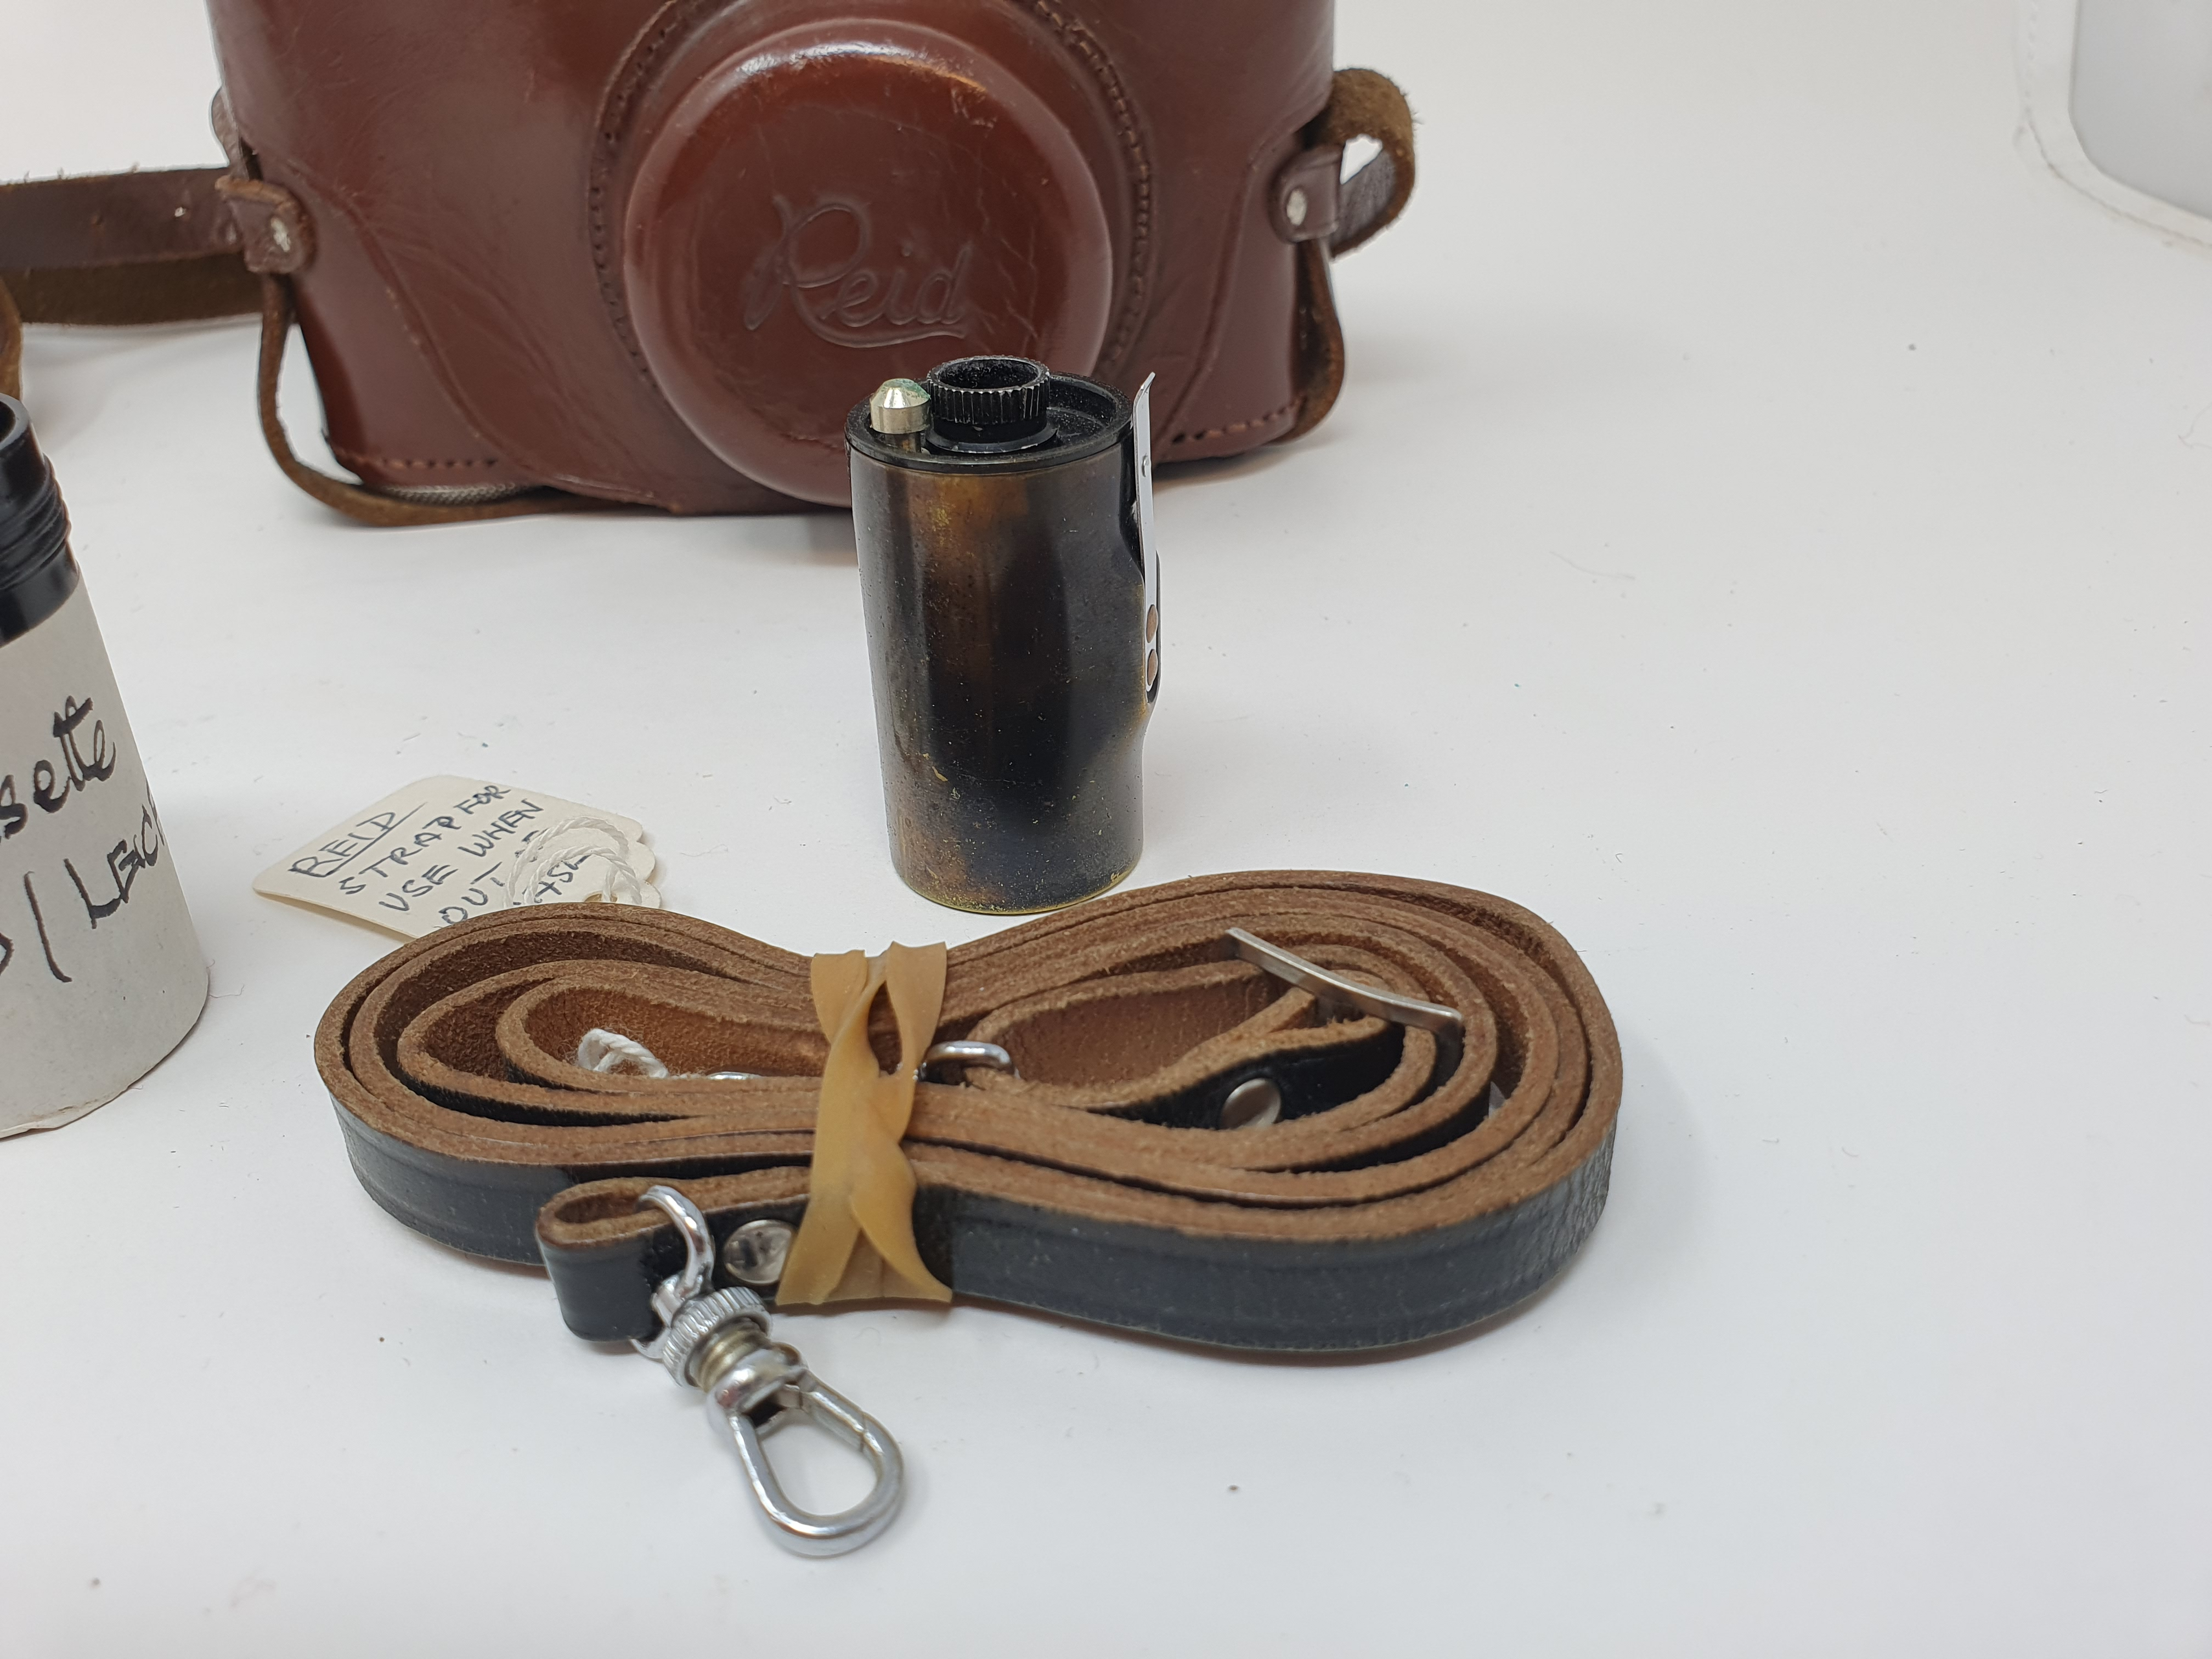 A Reid & Sigrist ltd camera, serial number P2750, with leather outer case, lens, and accessories - Image 6 of 7